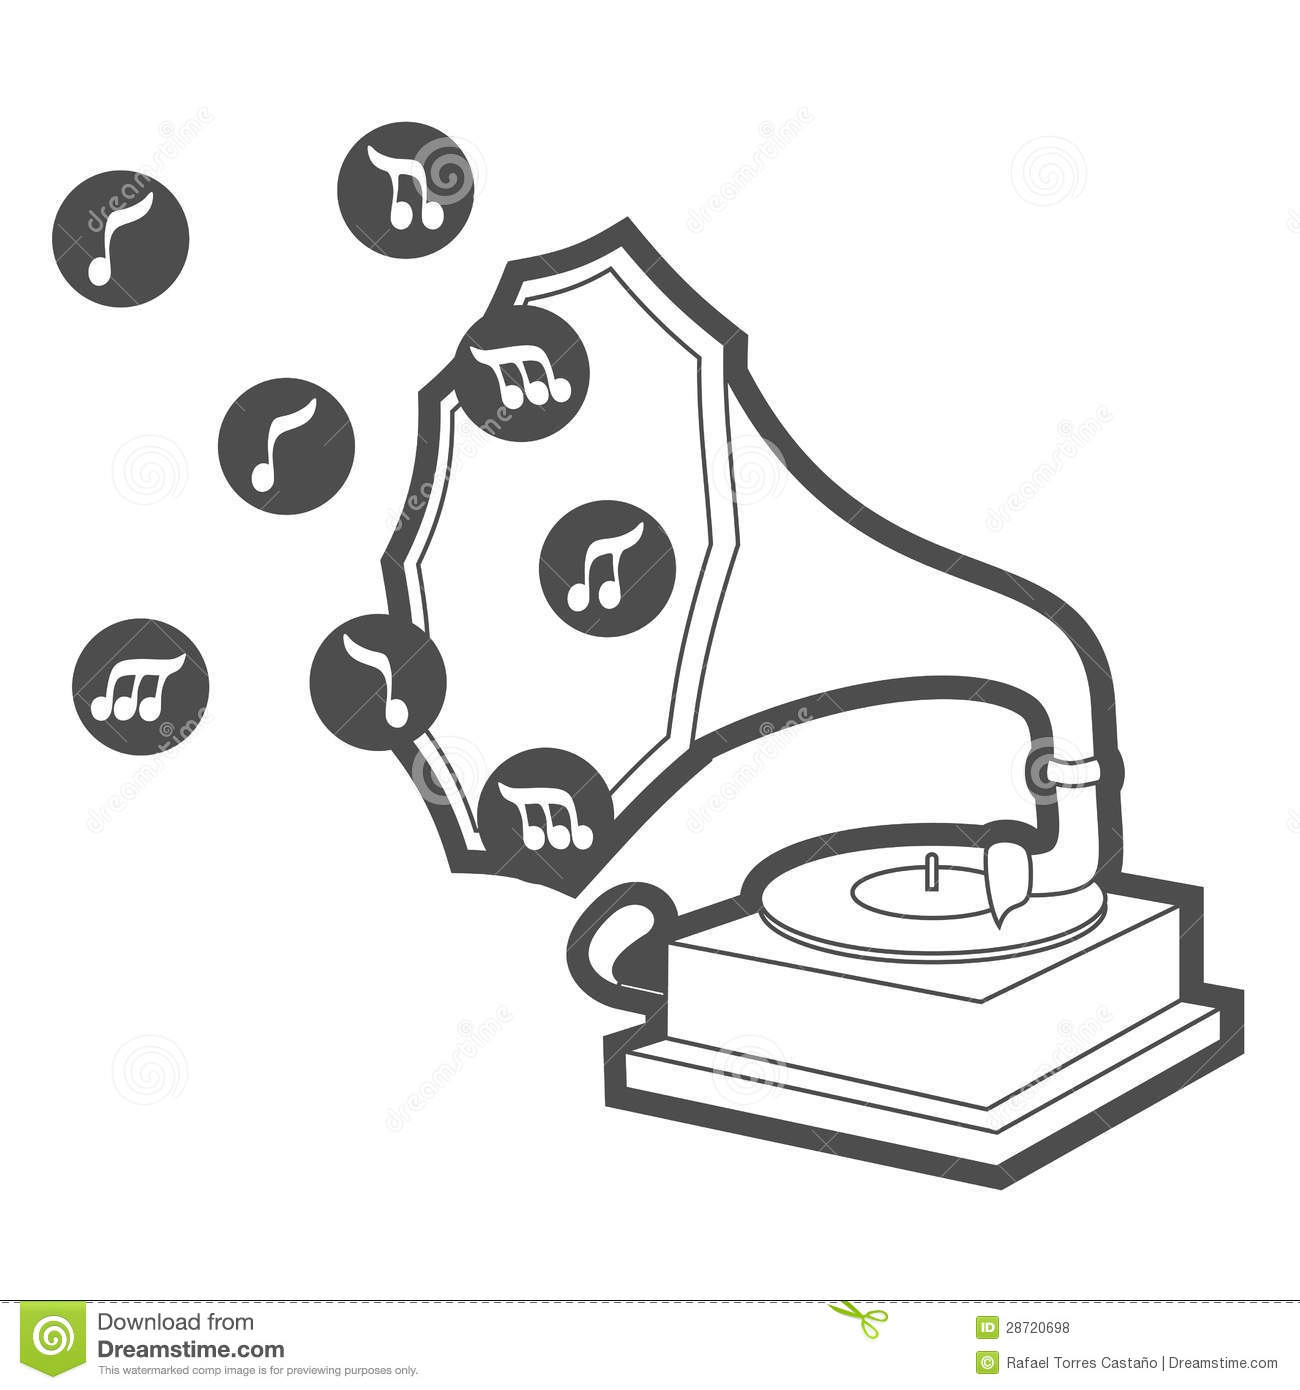 Elegant Jukebox Royalty Free Stock Photos